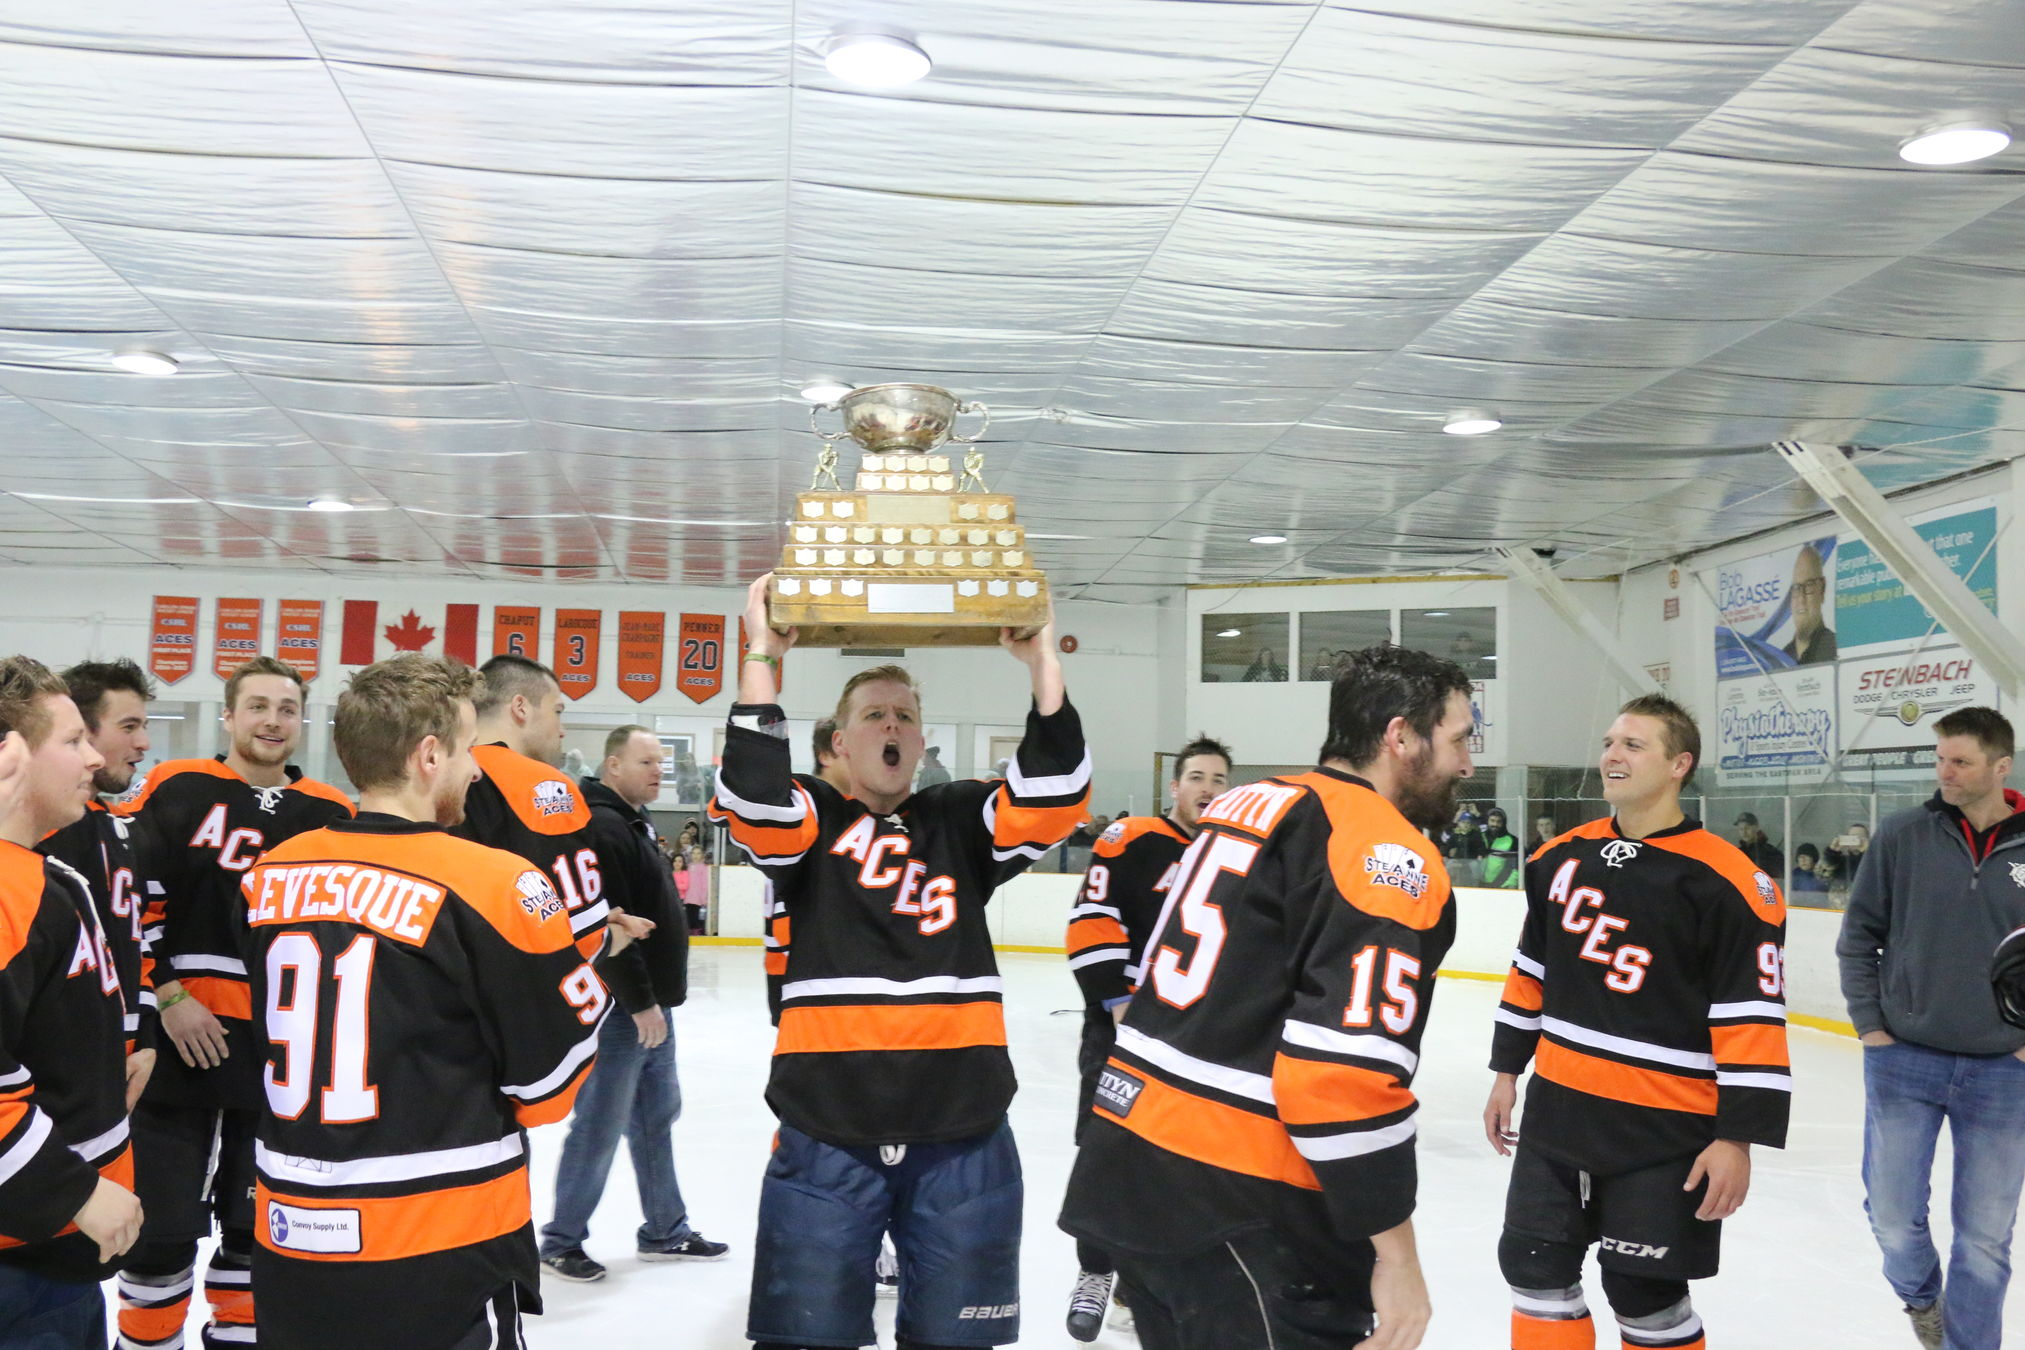 Tanner Harms celebrates with the hardware after Harms scored the winning goal just 58 seconds into overtime as the Ste. Anne Aces beat the Grunthal Red Wings 1-0 Sunday afternoon at Ste. Anne to win their third straight CSHL crown.